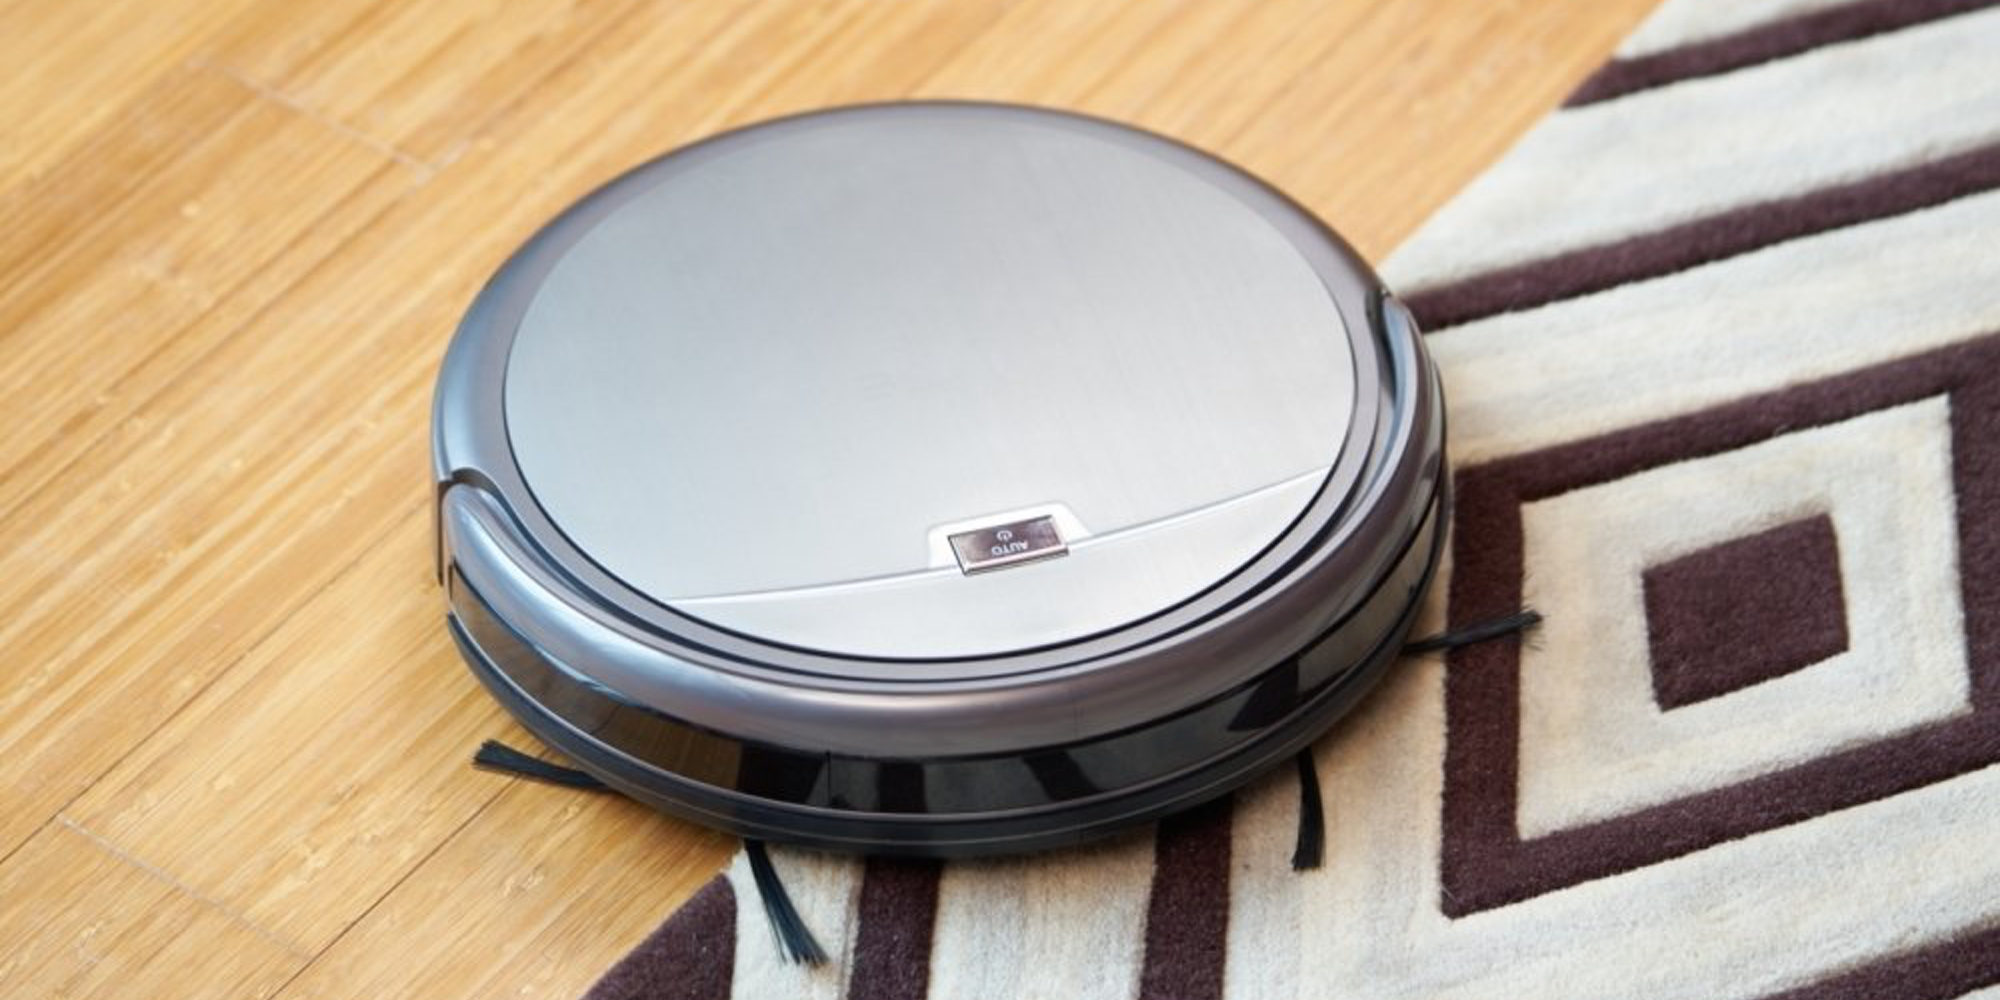 Let The Ilifea4s Robot Vacuum Cleaner Handle The Mess At